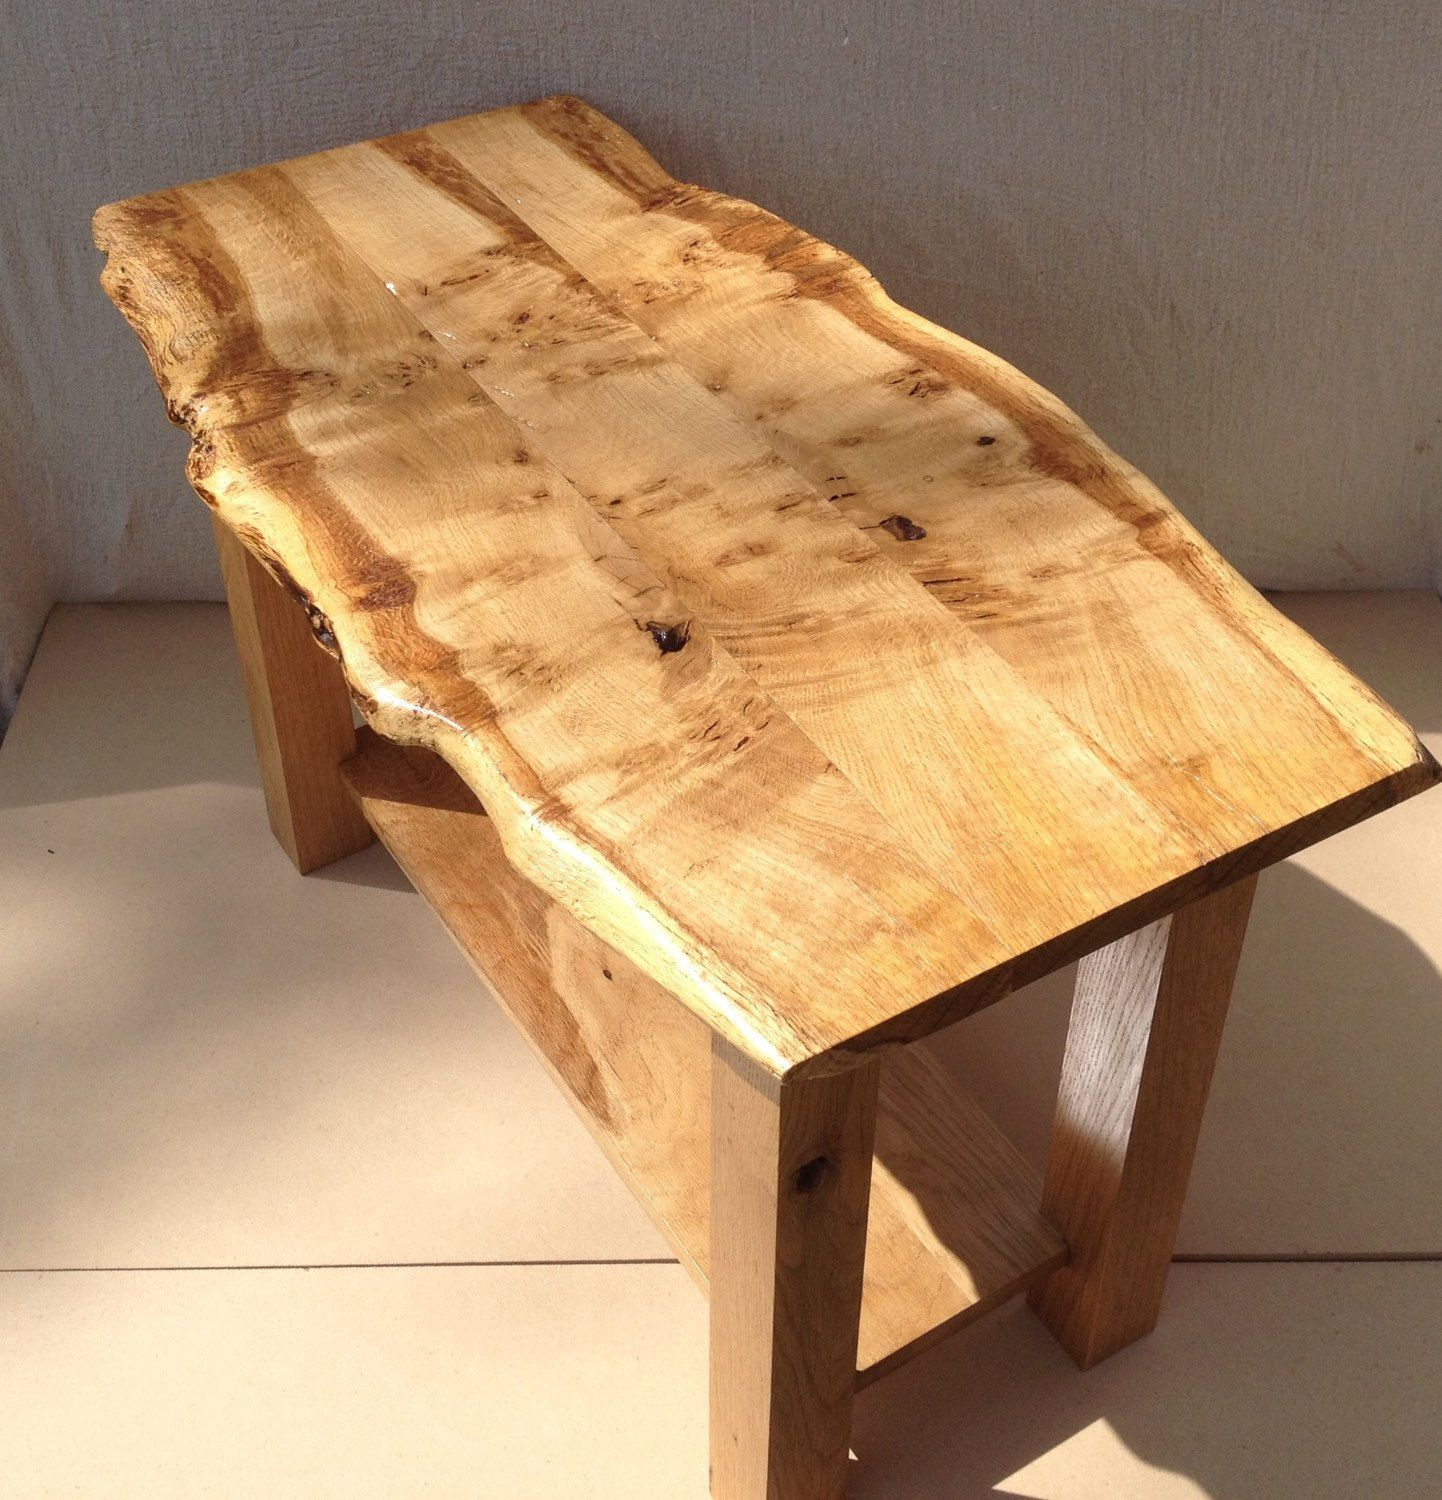 Live Edge Table Oak Coffee Table Waney Edge Coffee Table End Table Solid Oak Table Rustic Coffee Table L Oak Coffee Table Rustic Coffee Tables Log Coffee Table